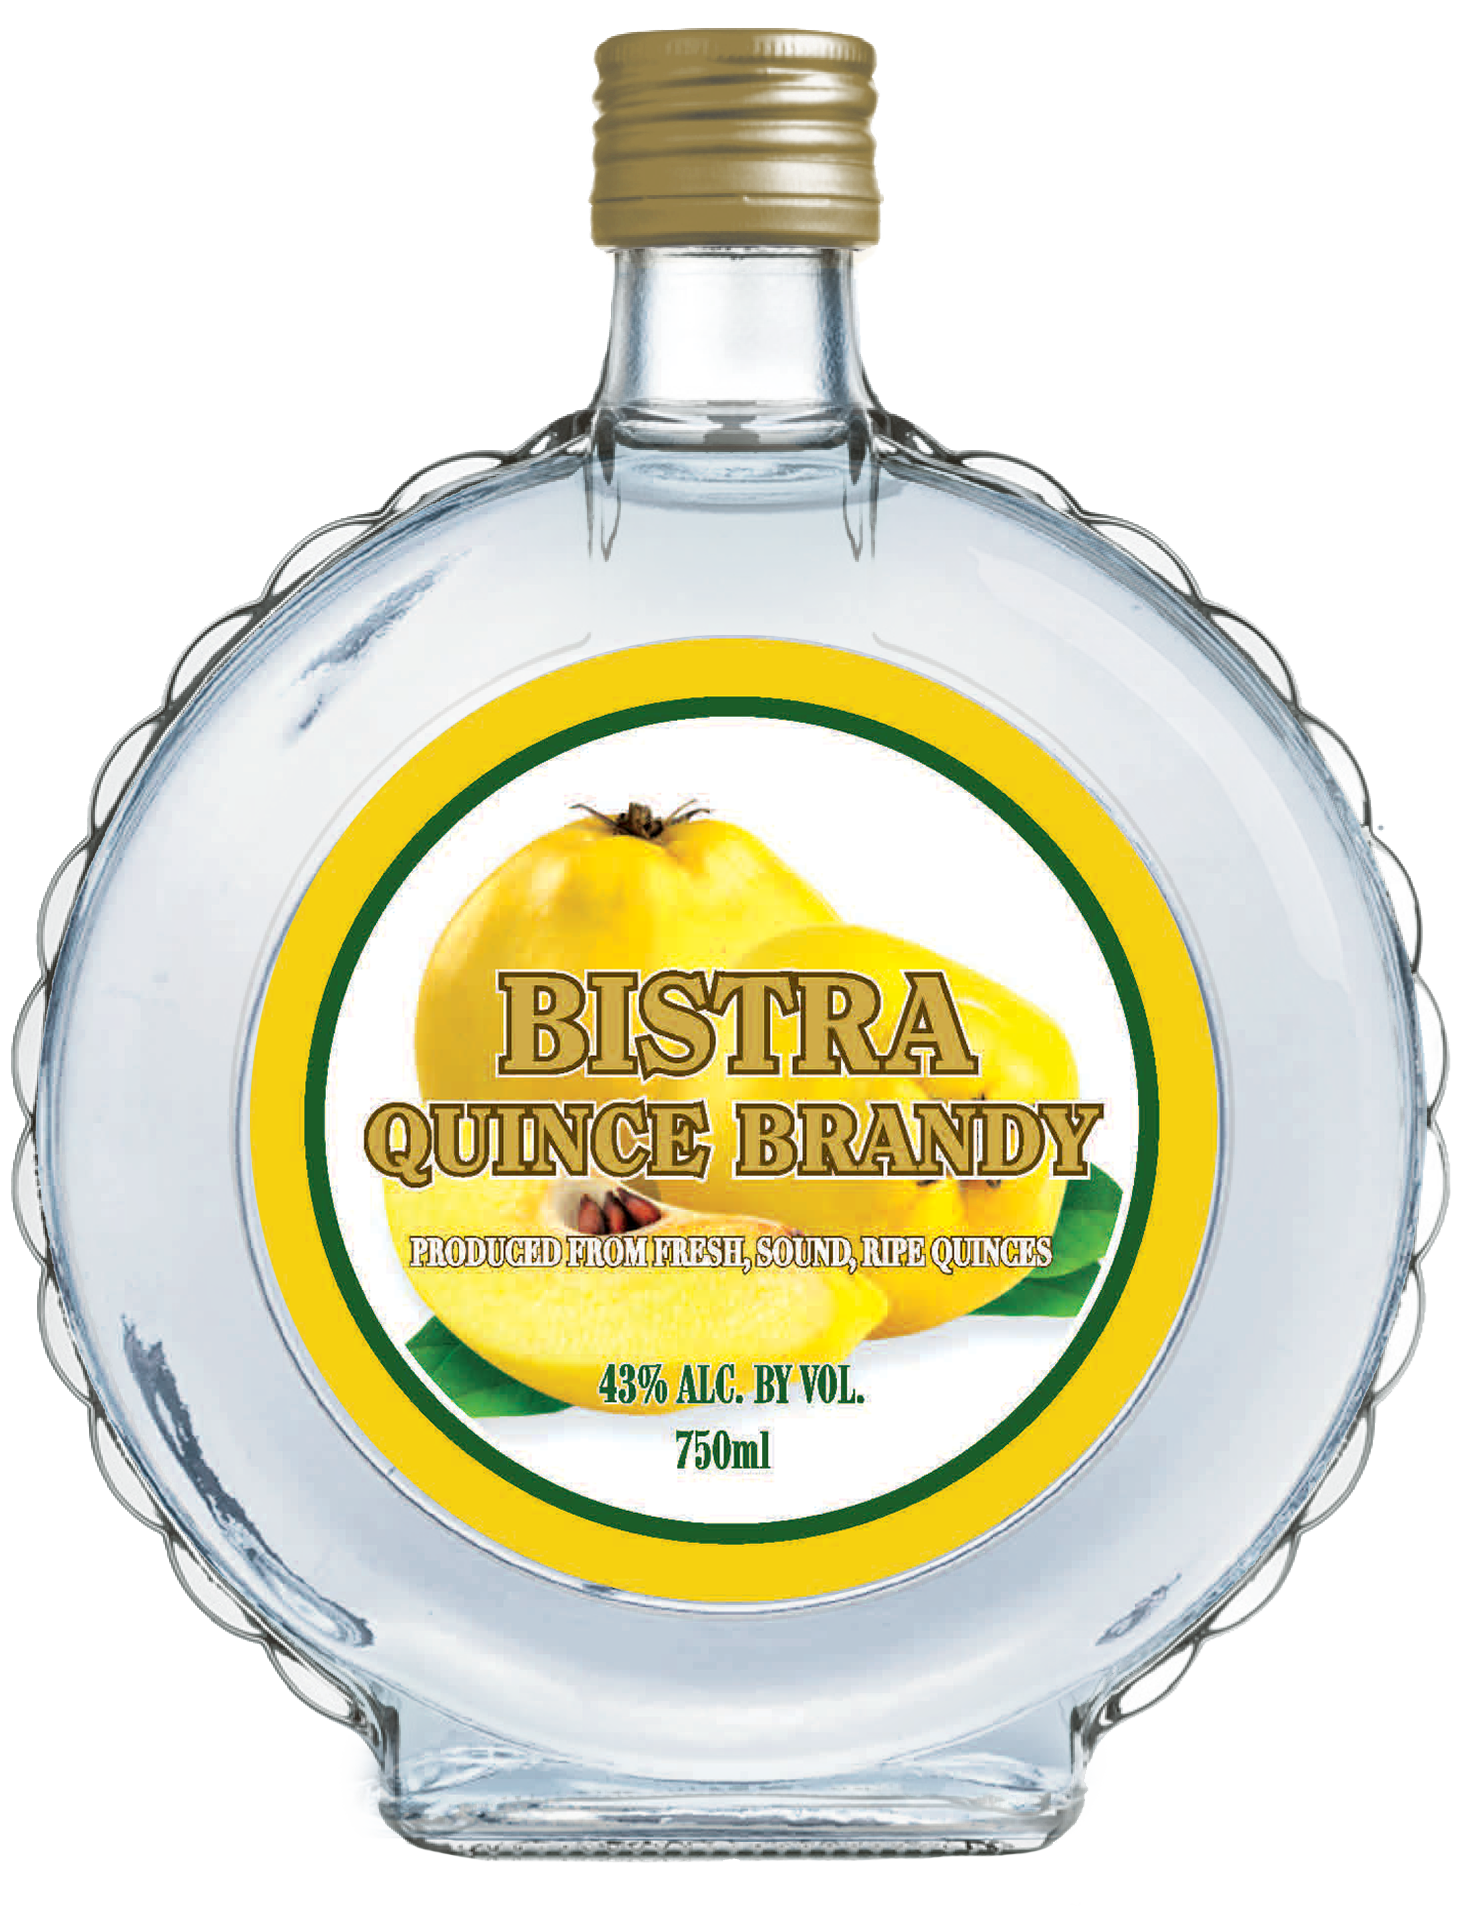 Bistra-Quince